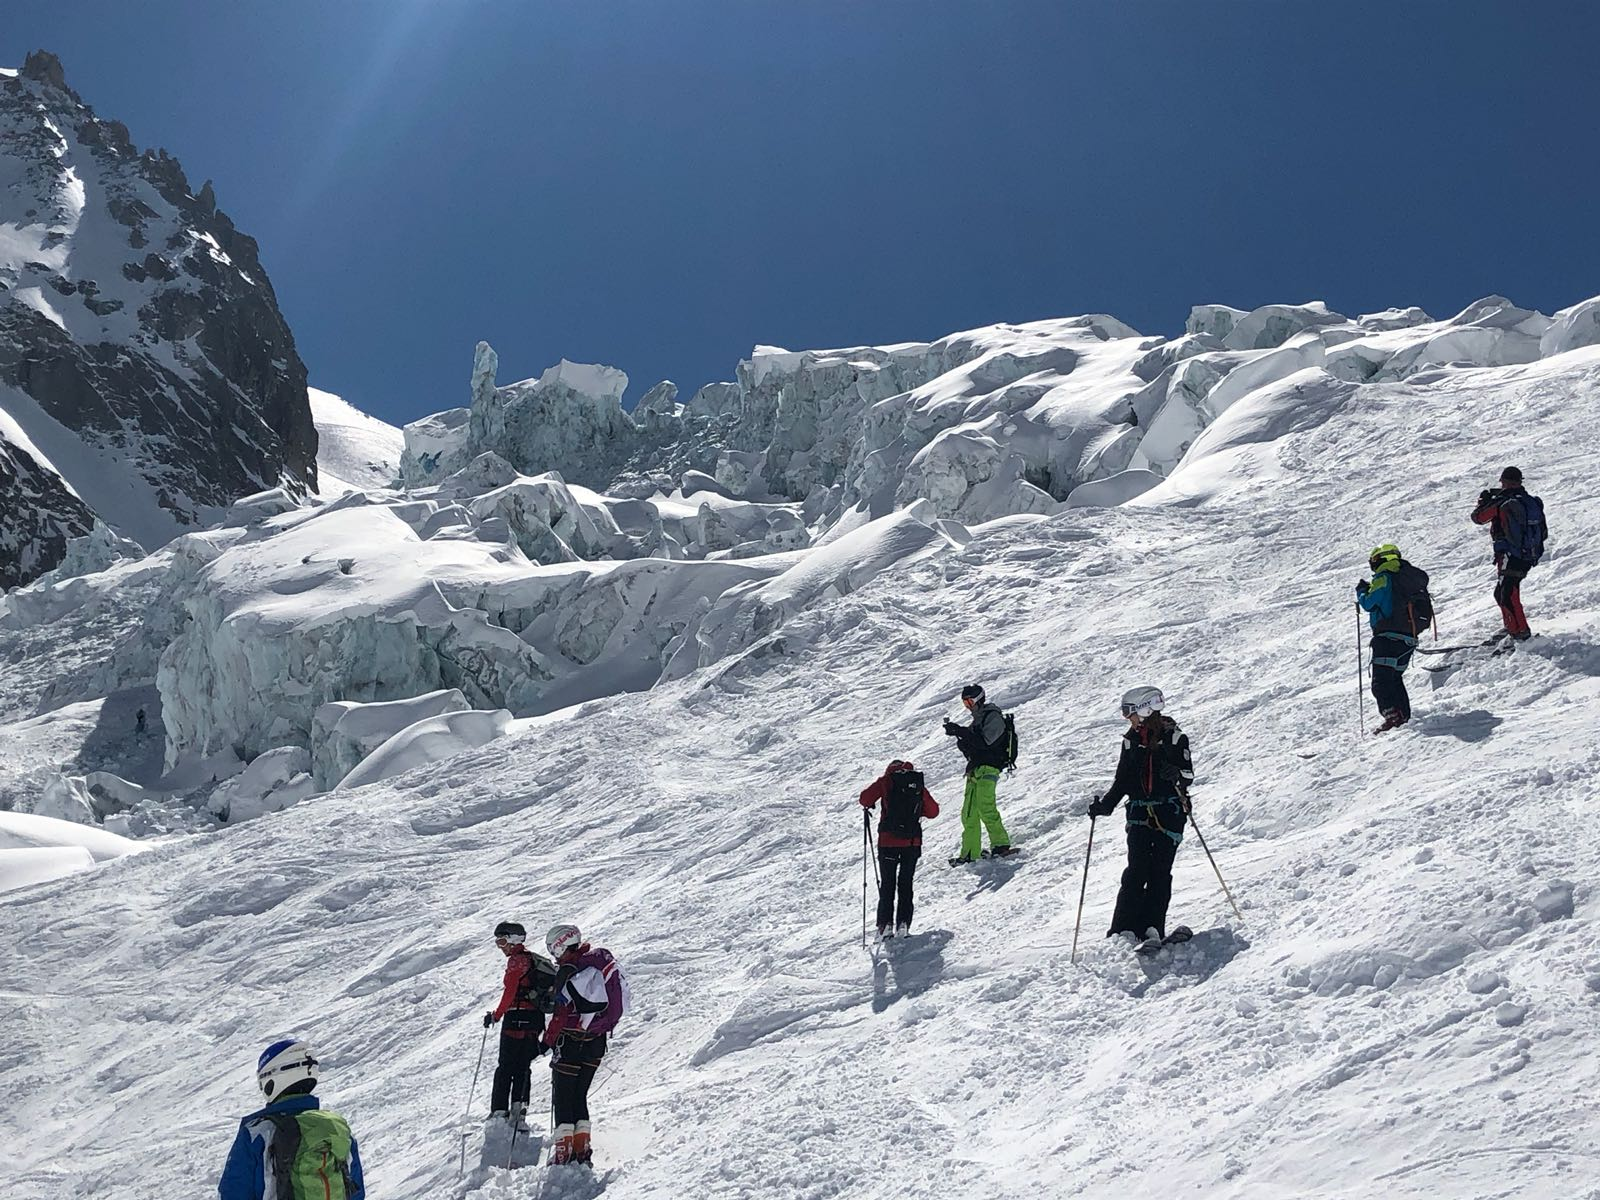 vallee blanche guide alpine proup (75)